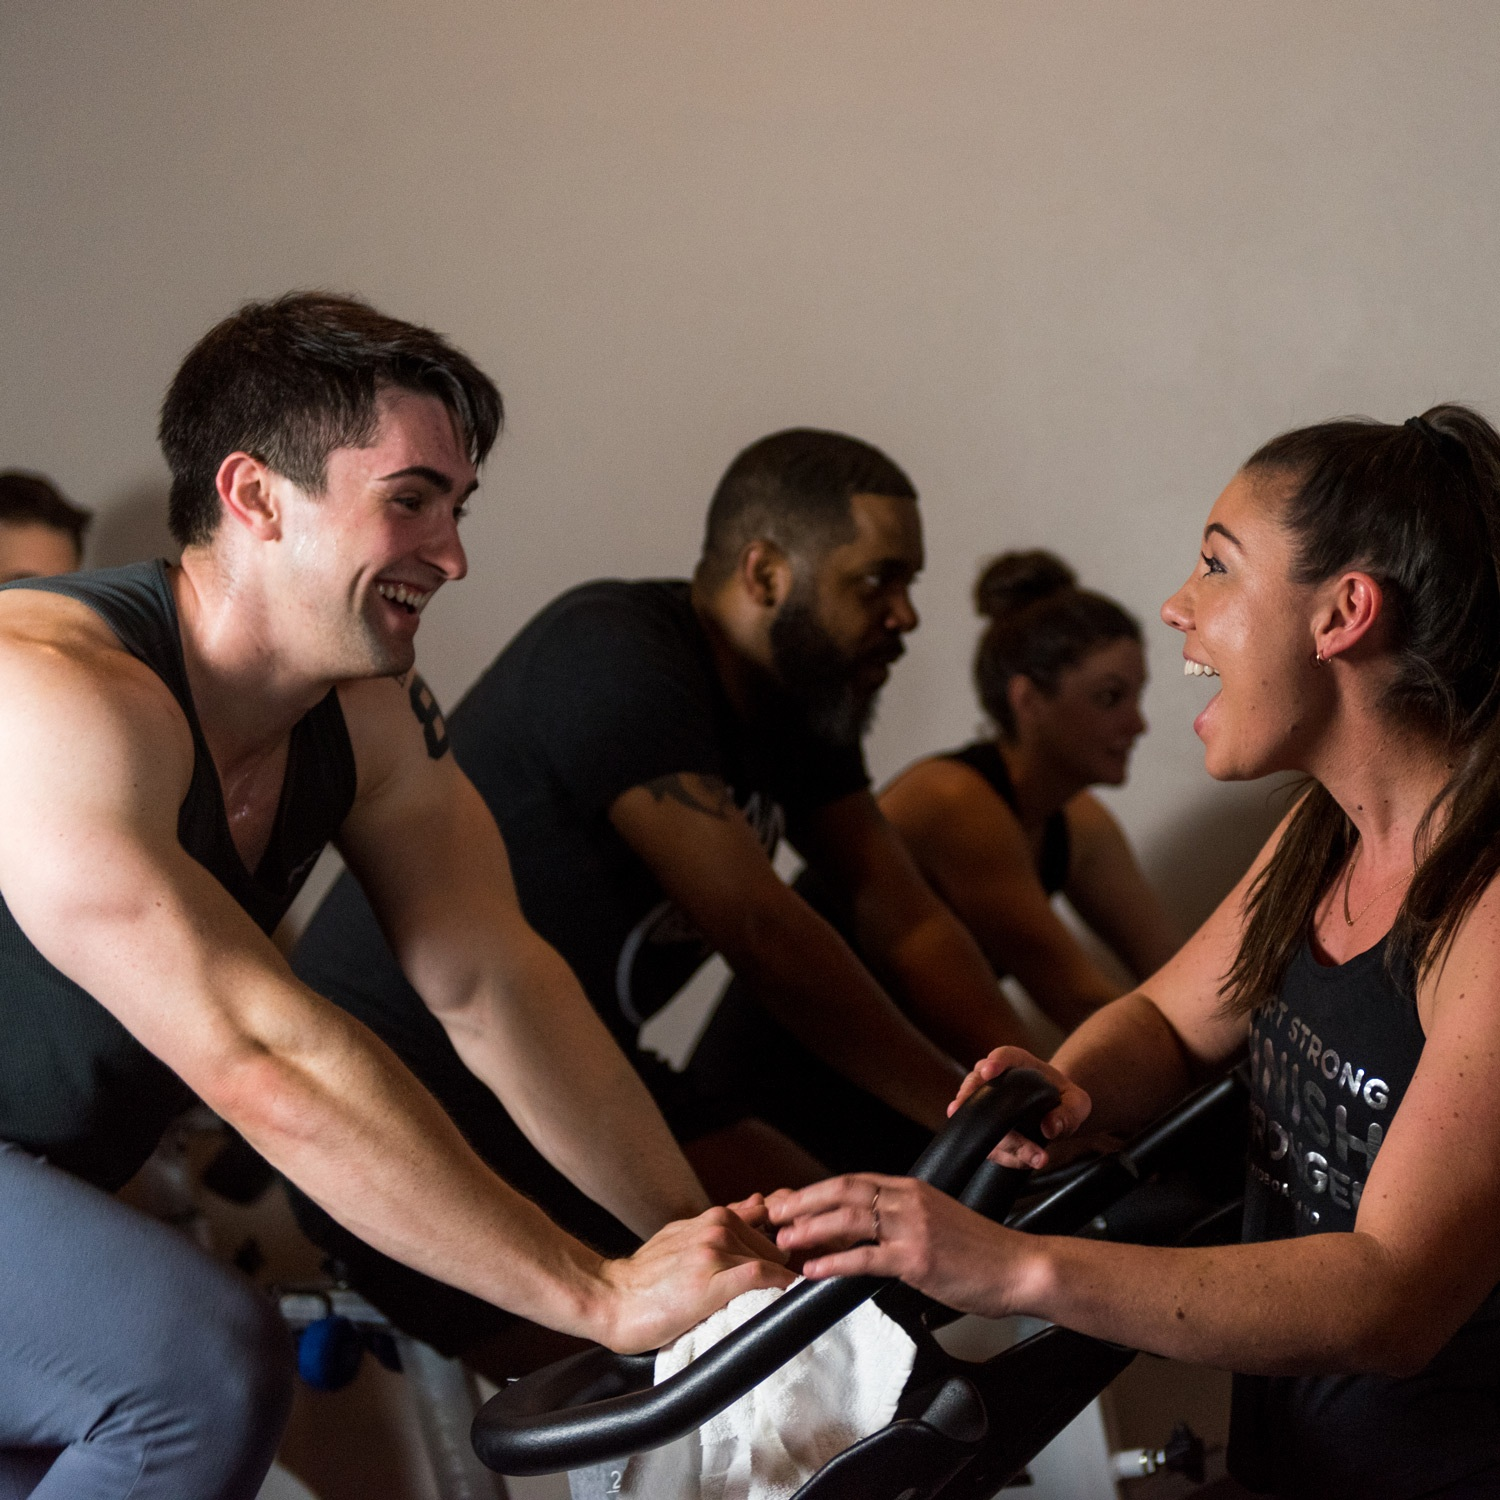 Indoor cycling - Come for our award-winning, seriously fun RIDE (spinning) classes on our high-caliber bikes.